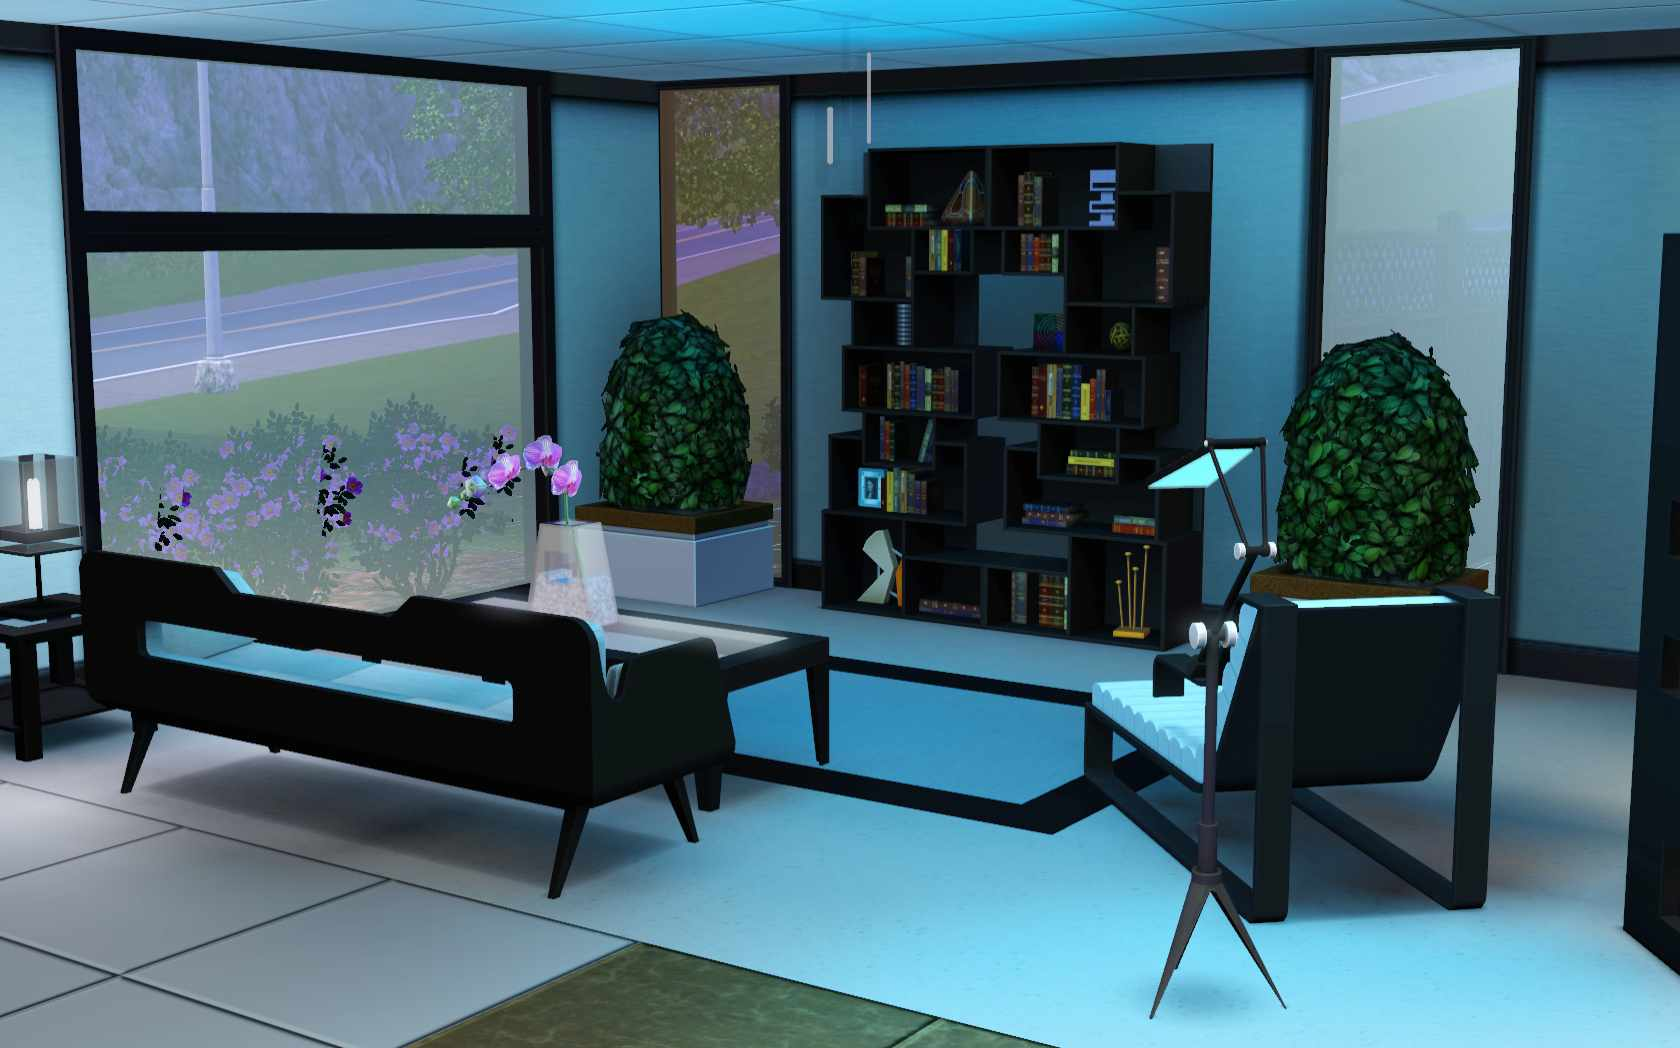 The Sims 3 Home Building and Design  The Trophy Room. The Sims 3  Room Build Ideas and Examples